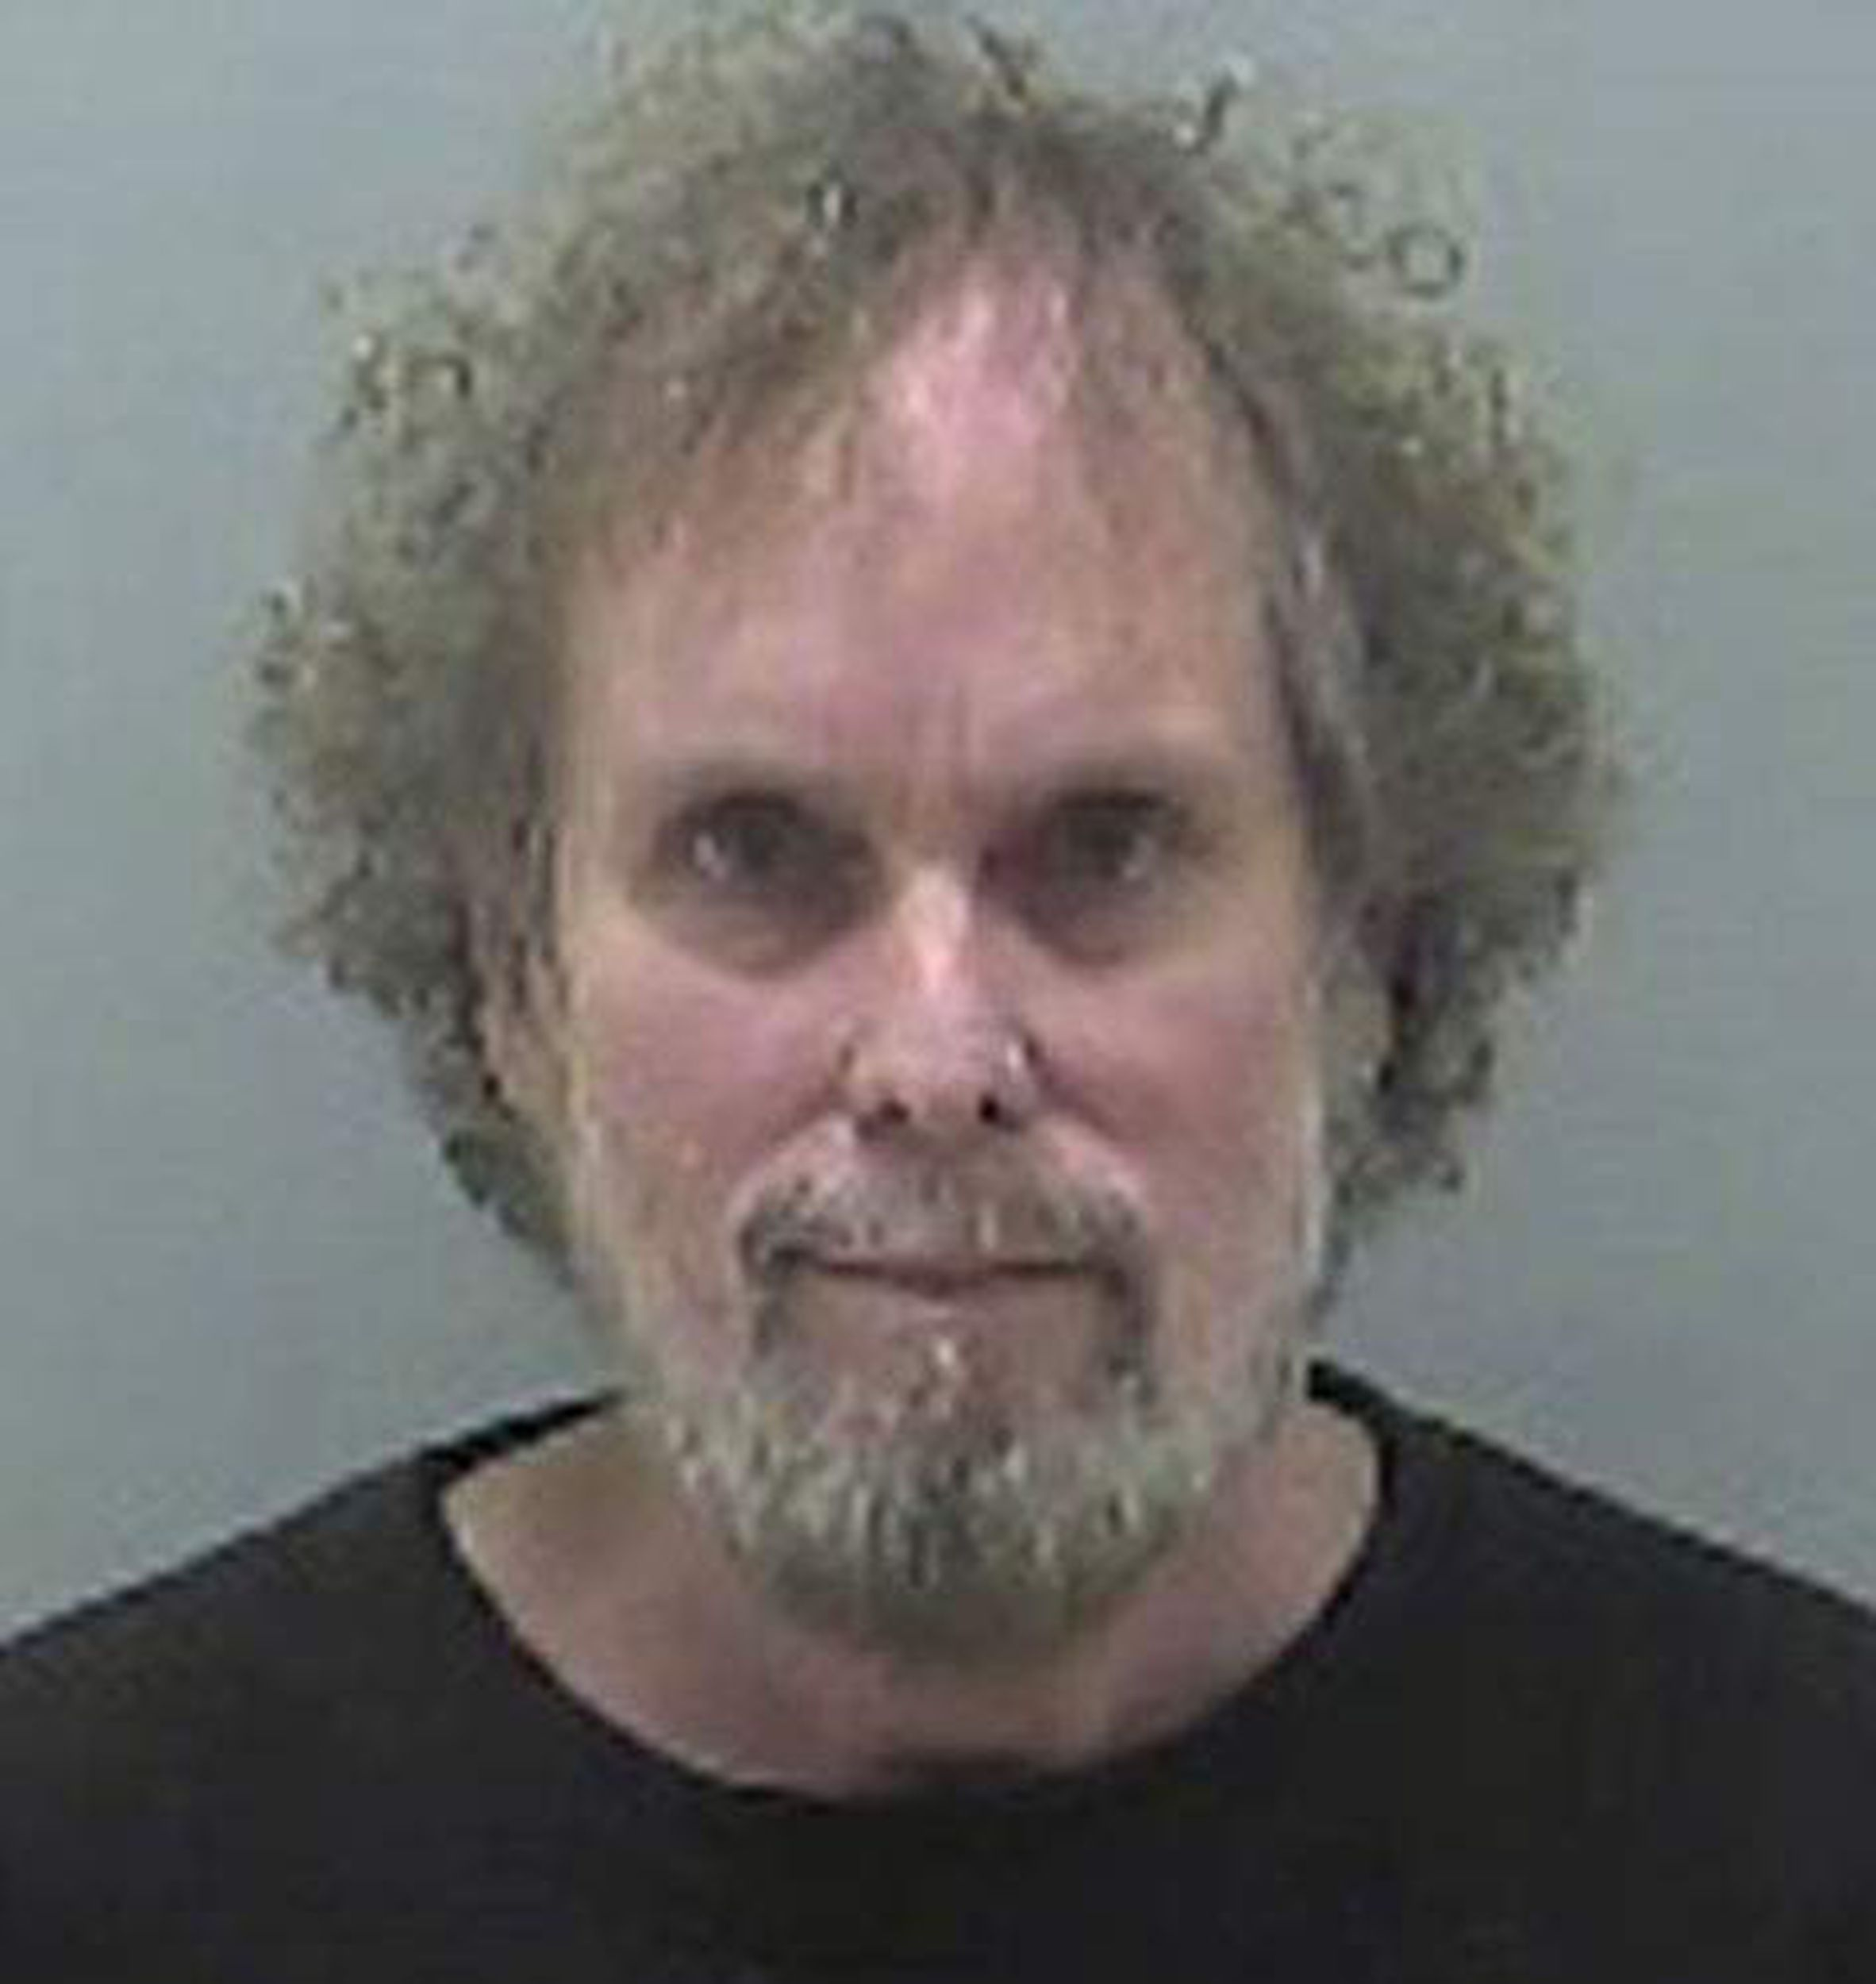 Deep Sea Treasure Hunter Pleads Guilty To Contempt Of Court